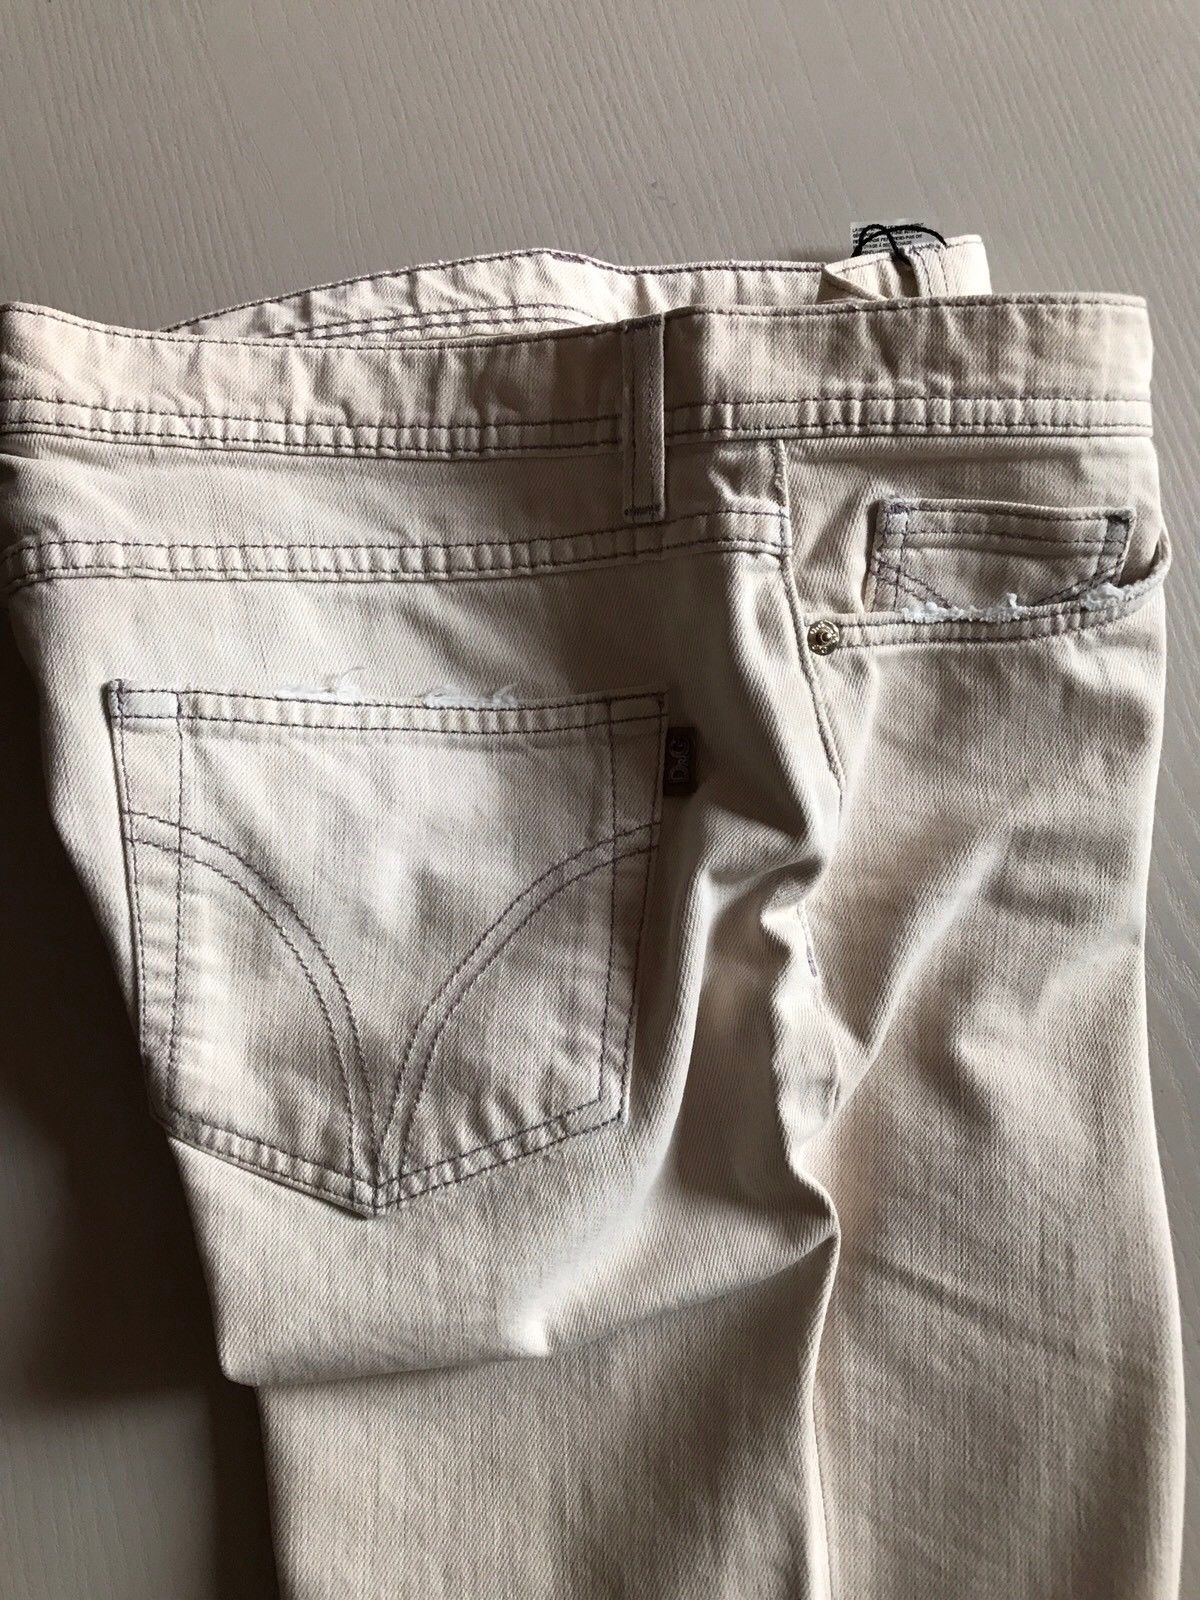 New $475 D&G Women's Pants Jeans Cream Size 31 Made In Italy - BAYSUPERSTORE